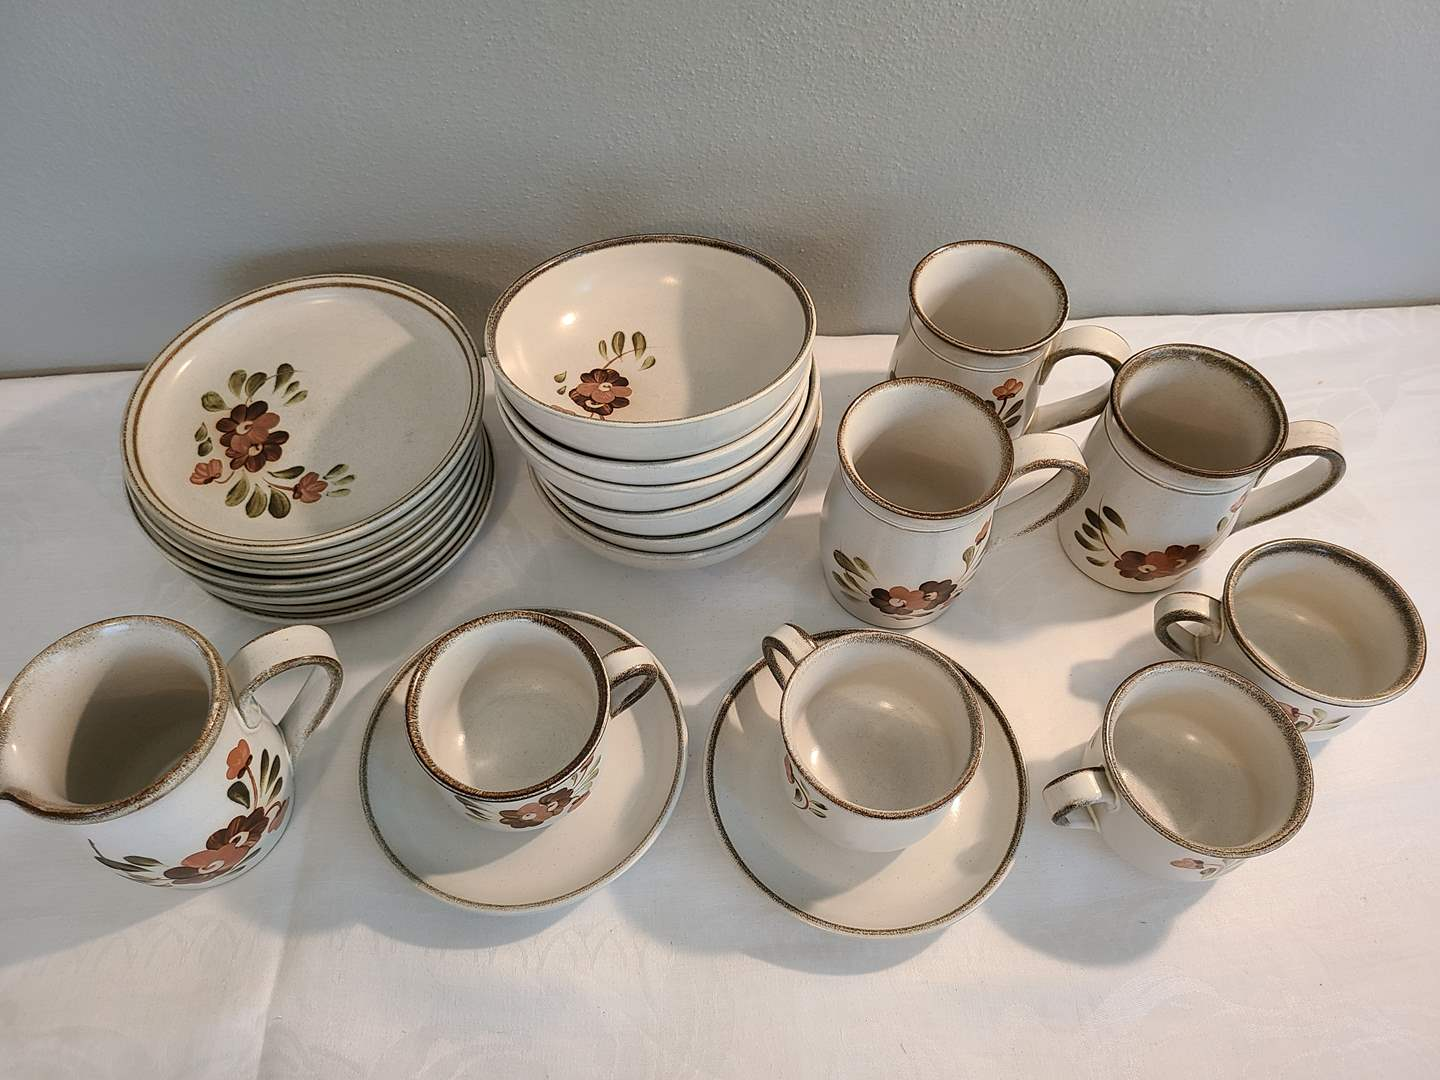 Lot# 137 - Denby made in England Pottery Dishes (main image)